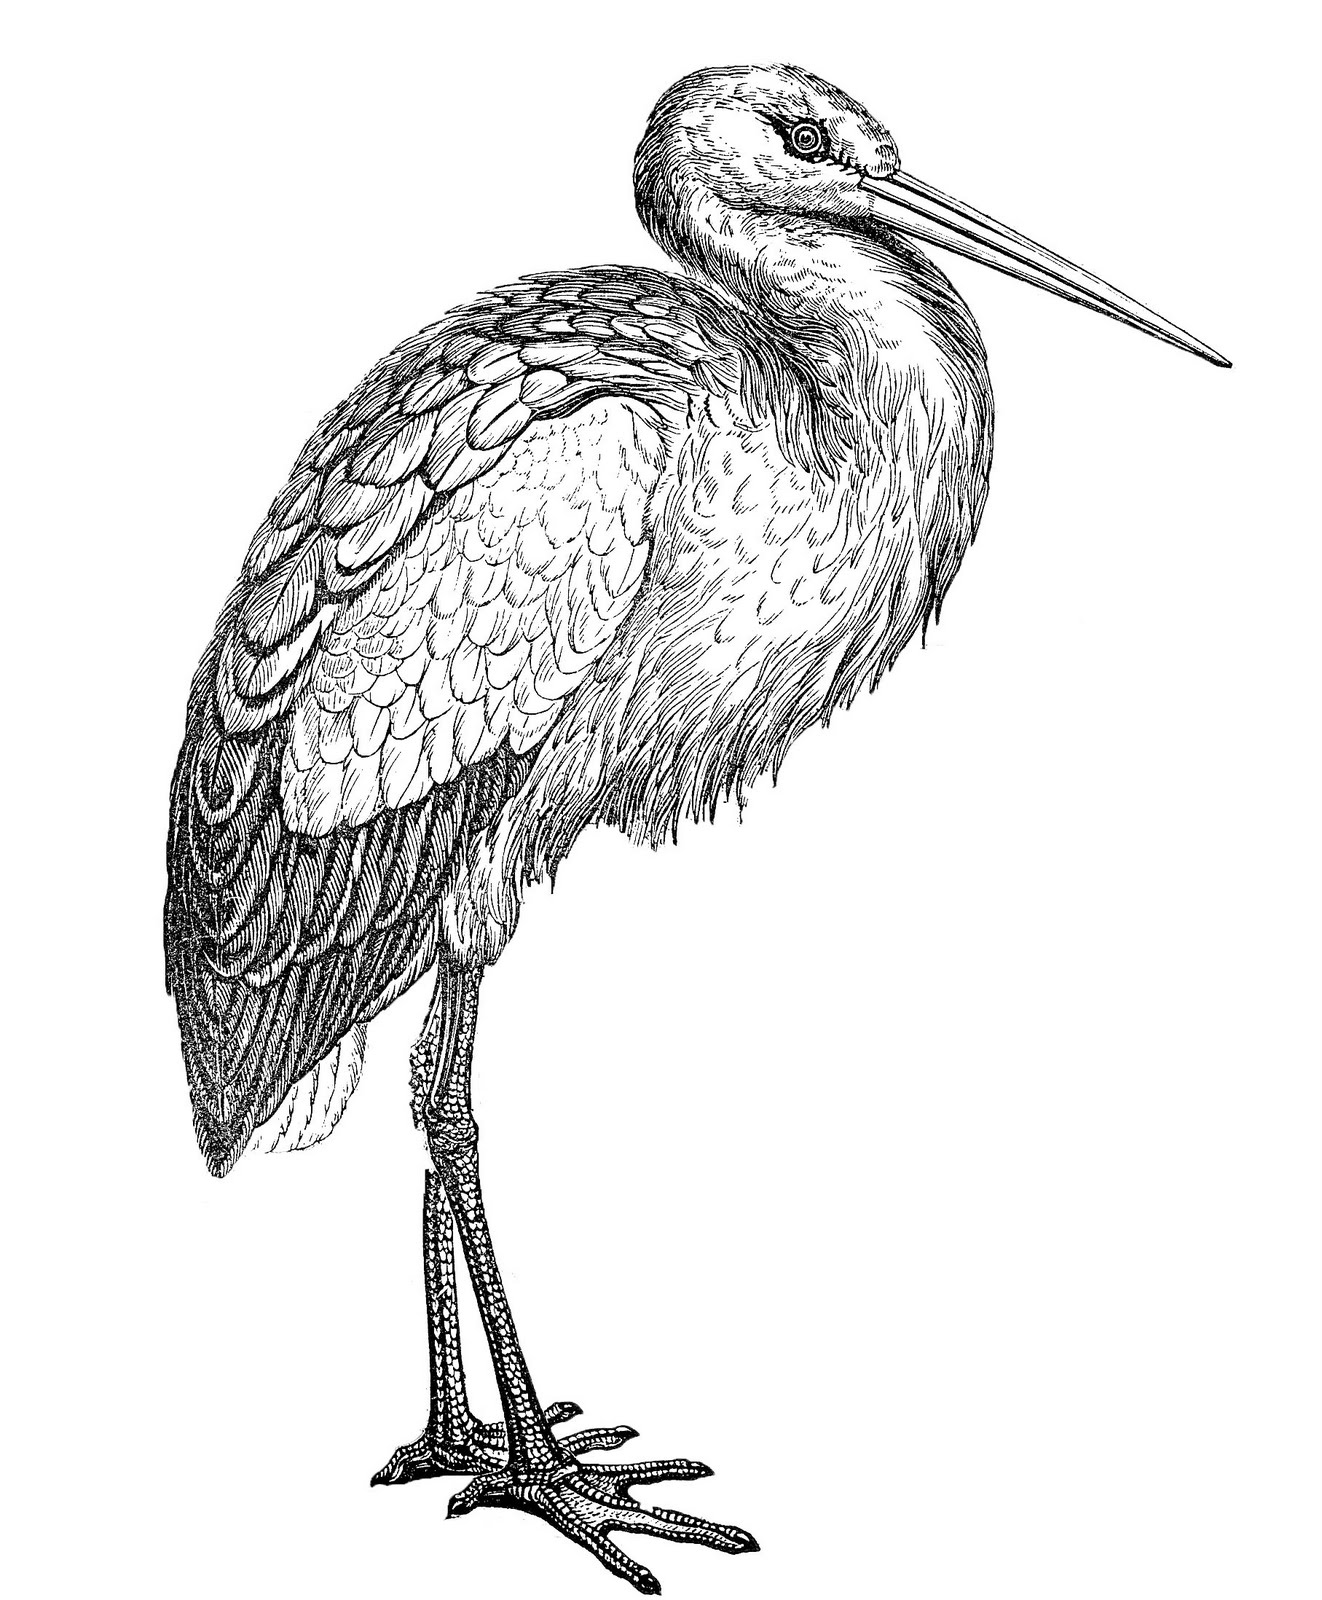 Vintage stork clipart picture free library Vintage Clip Art - Black and White Stork - The Graphics Fairy picture free library